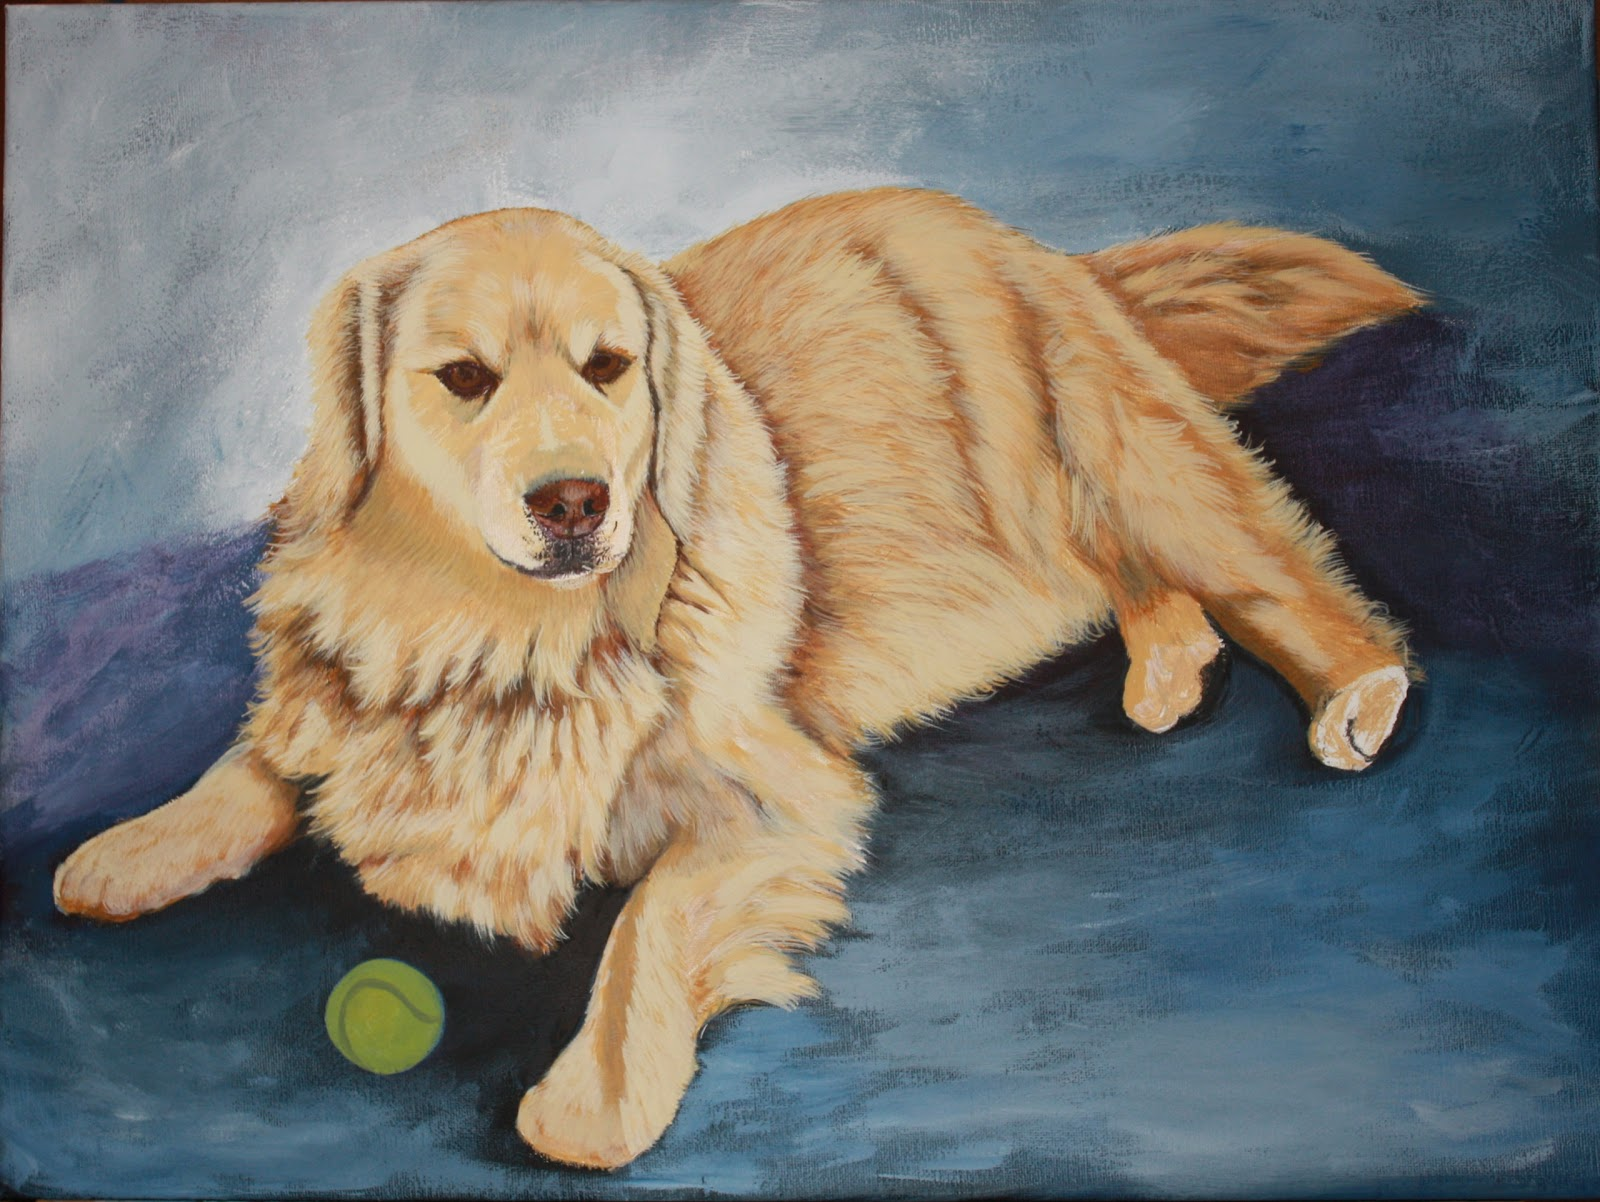 ... Designs - The Artists Way: More of Calvin, my 3rd Yellow Labrador